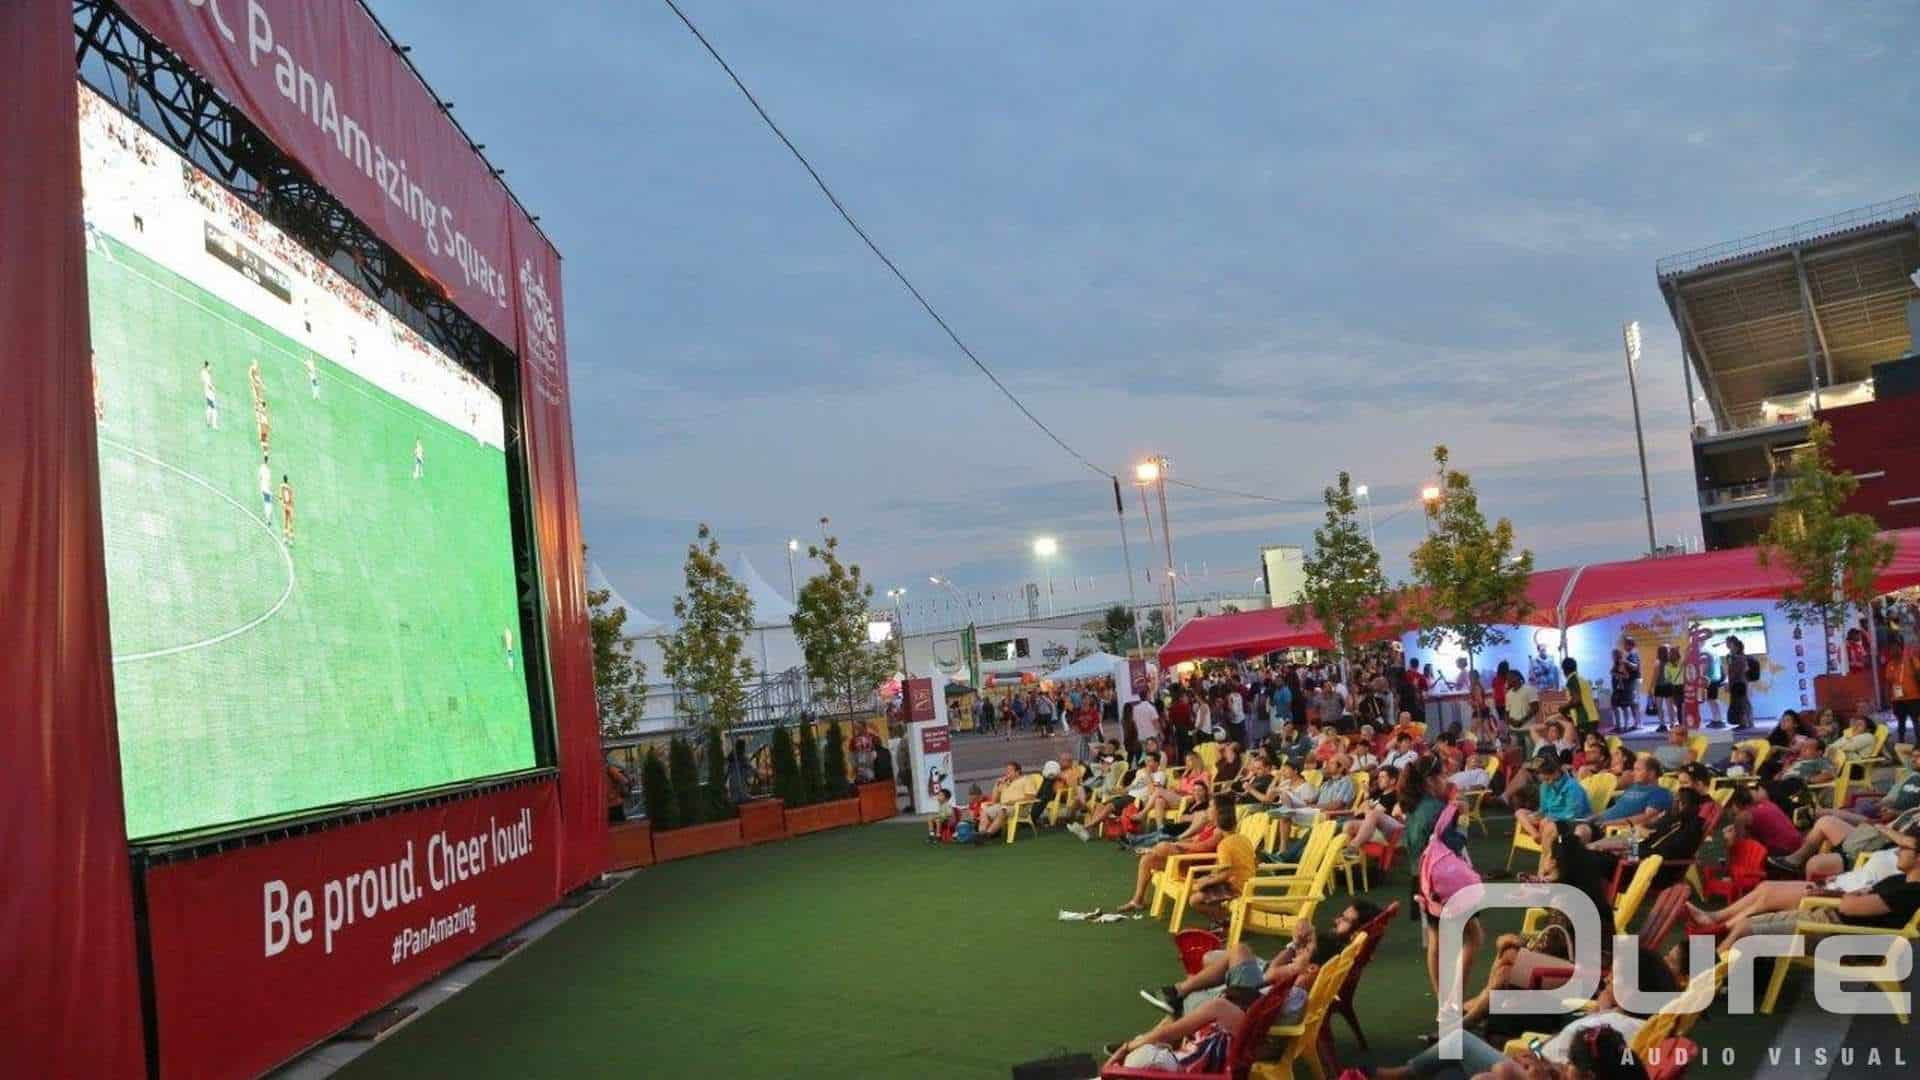 Outdoor weather resistant LED video wall showing sports